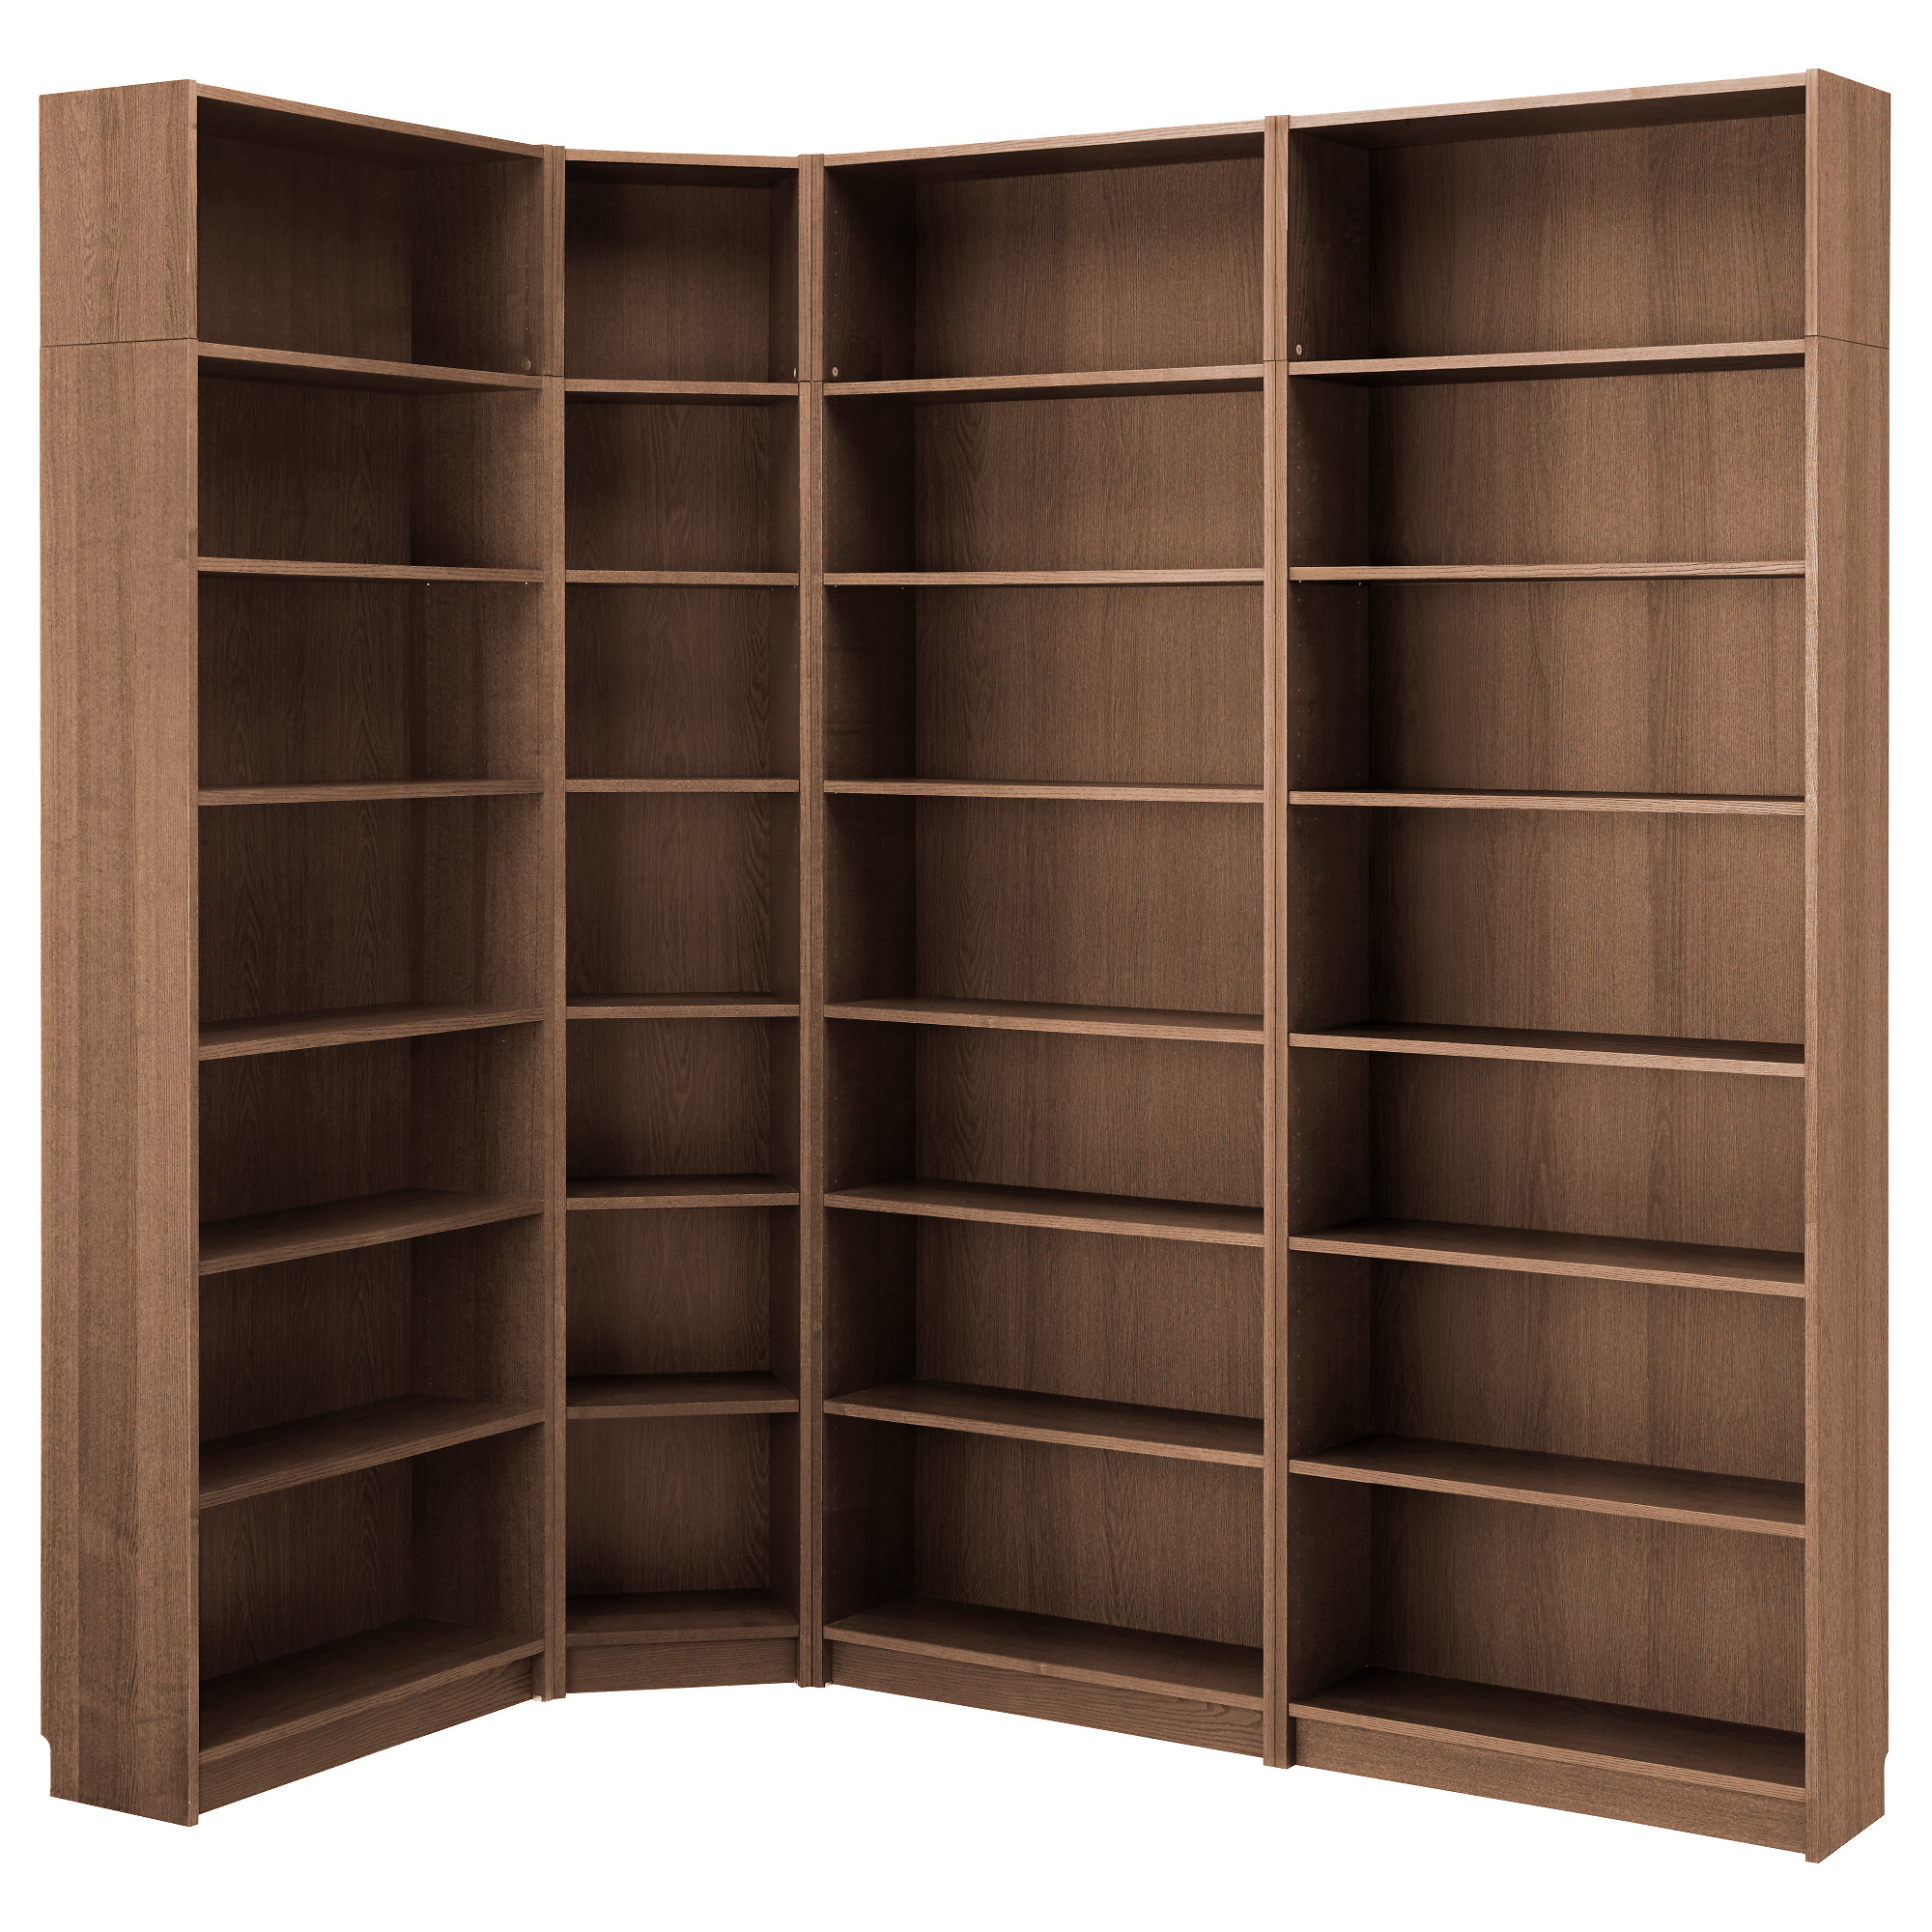 Ikea billy bookcase corner the - Eclairage bibliotheque ikea ...